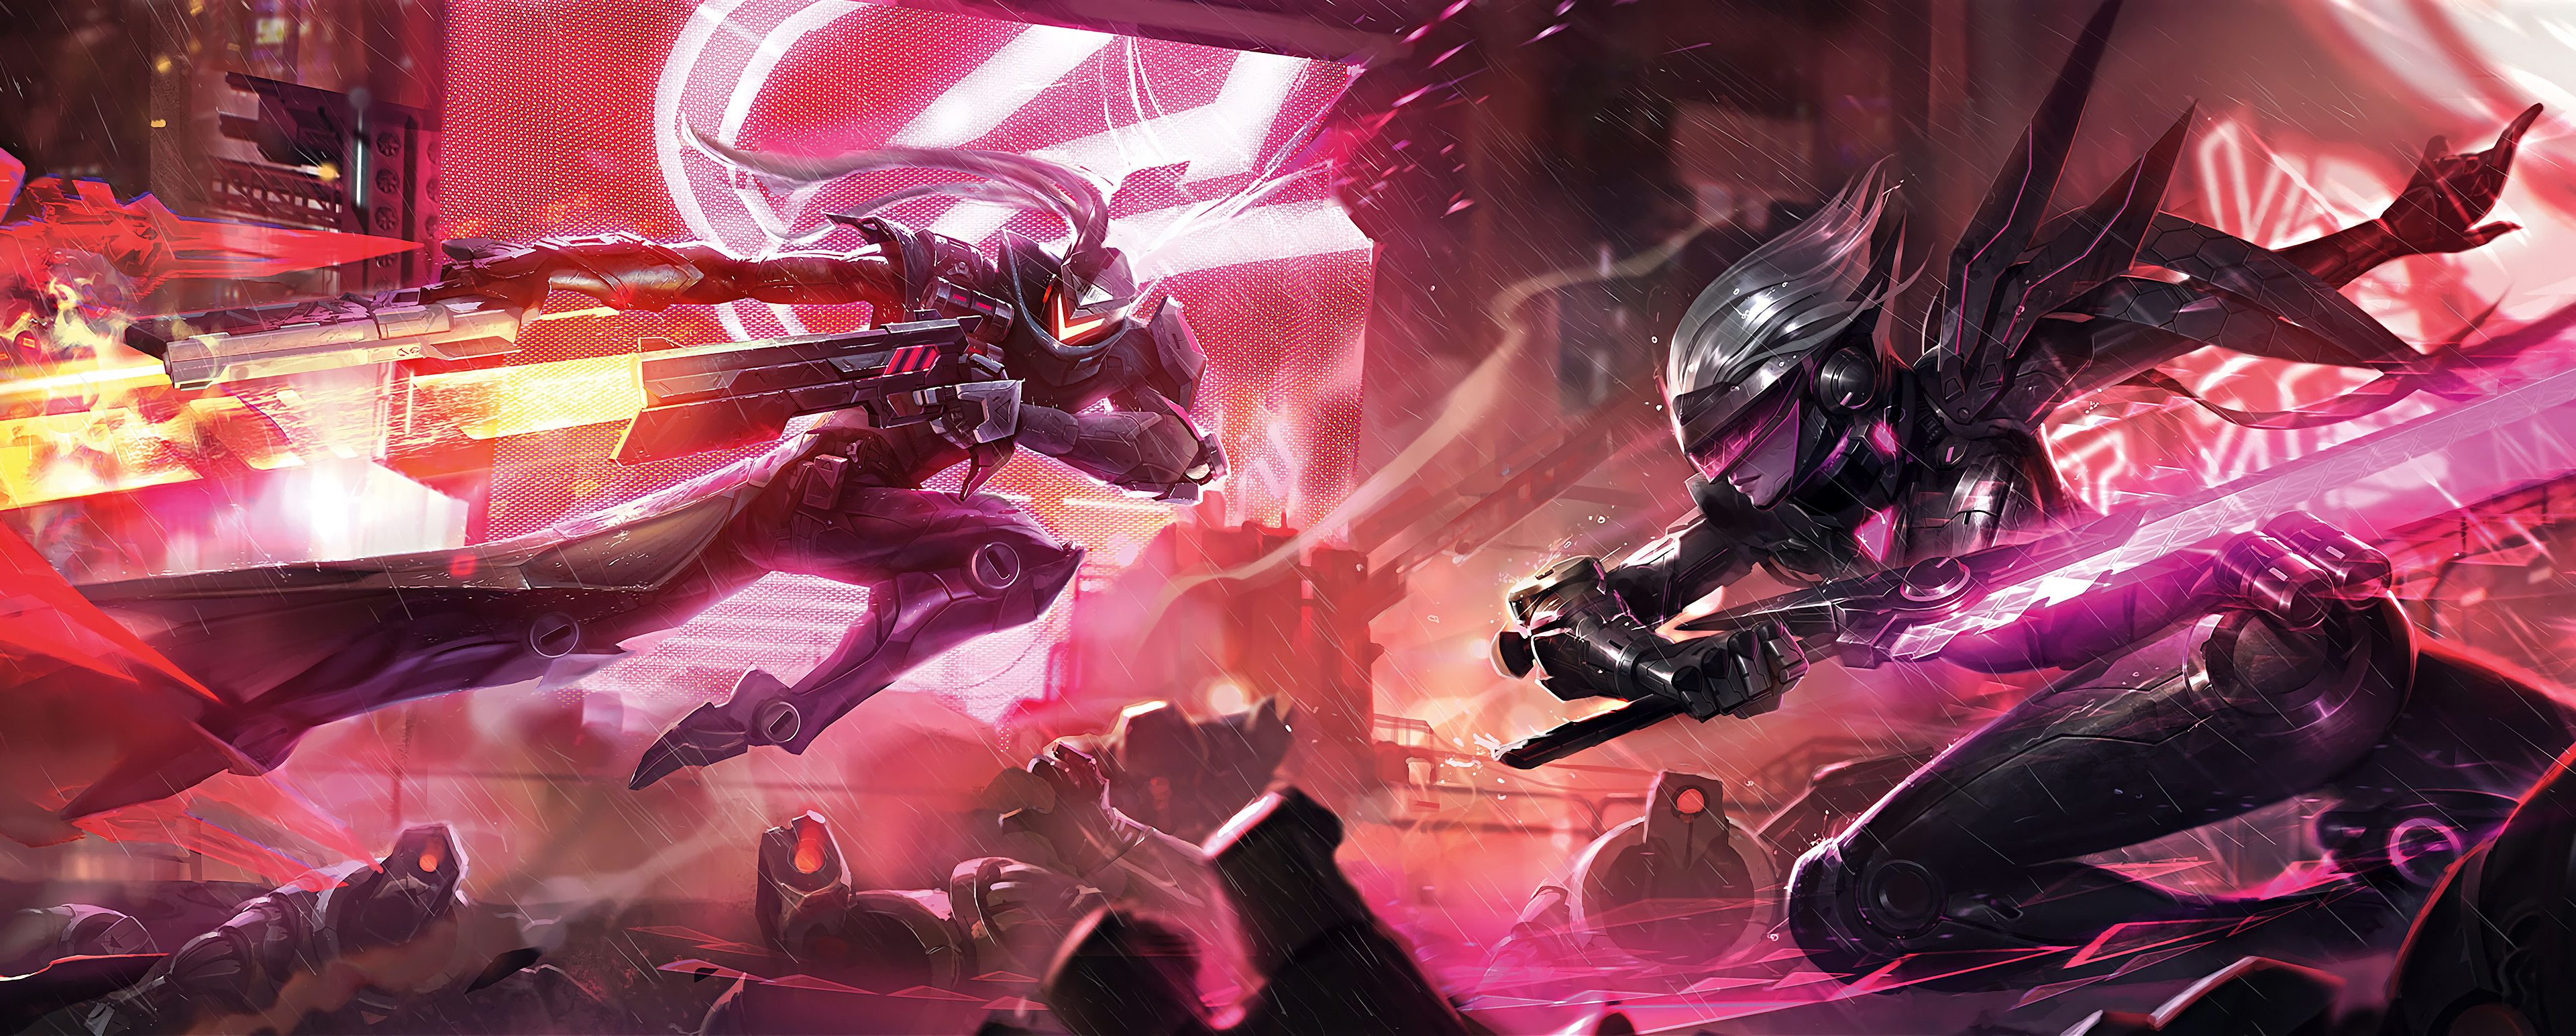 3840x1544 PROJECT Lucian & Fiora Splash Art League of Legends Artwork Wallpaper lol